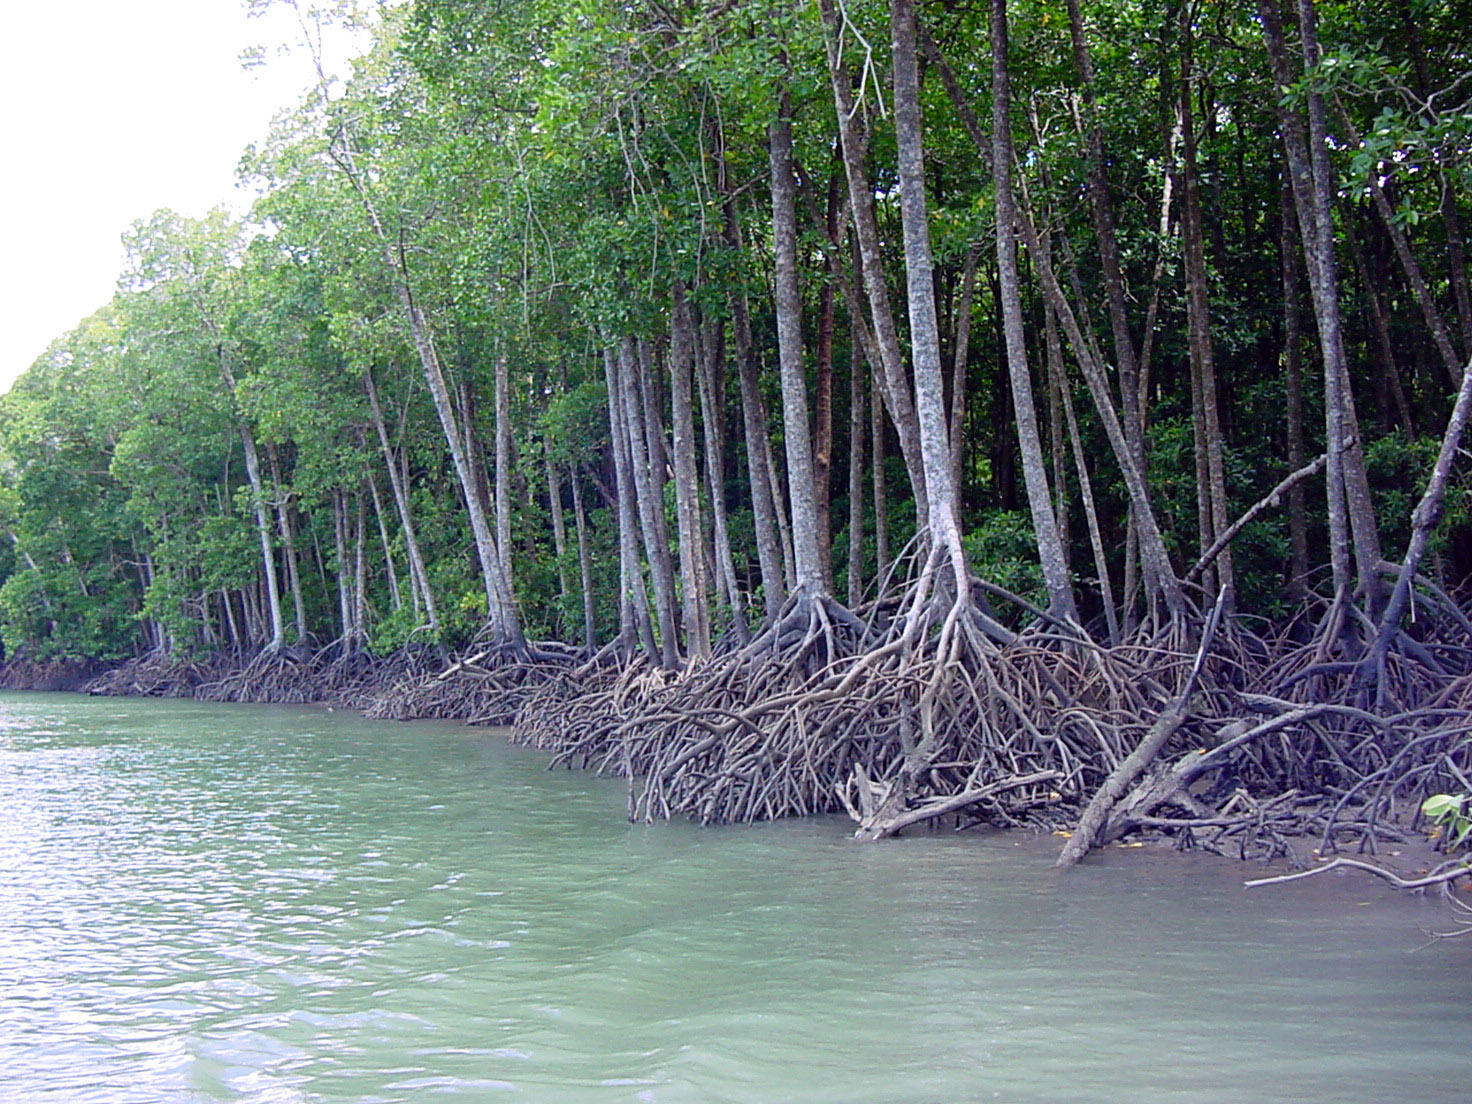 mangrove forest Mangrove forests supply us with various ecosystem services from natural storm protection to fisheries enhancement and provide important habitats for animals.